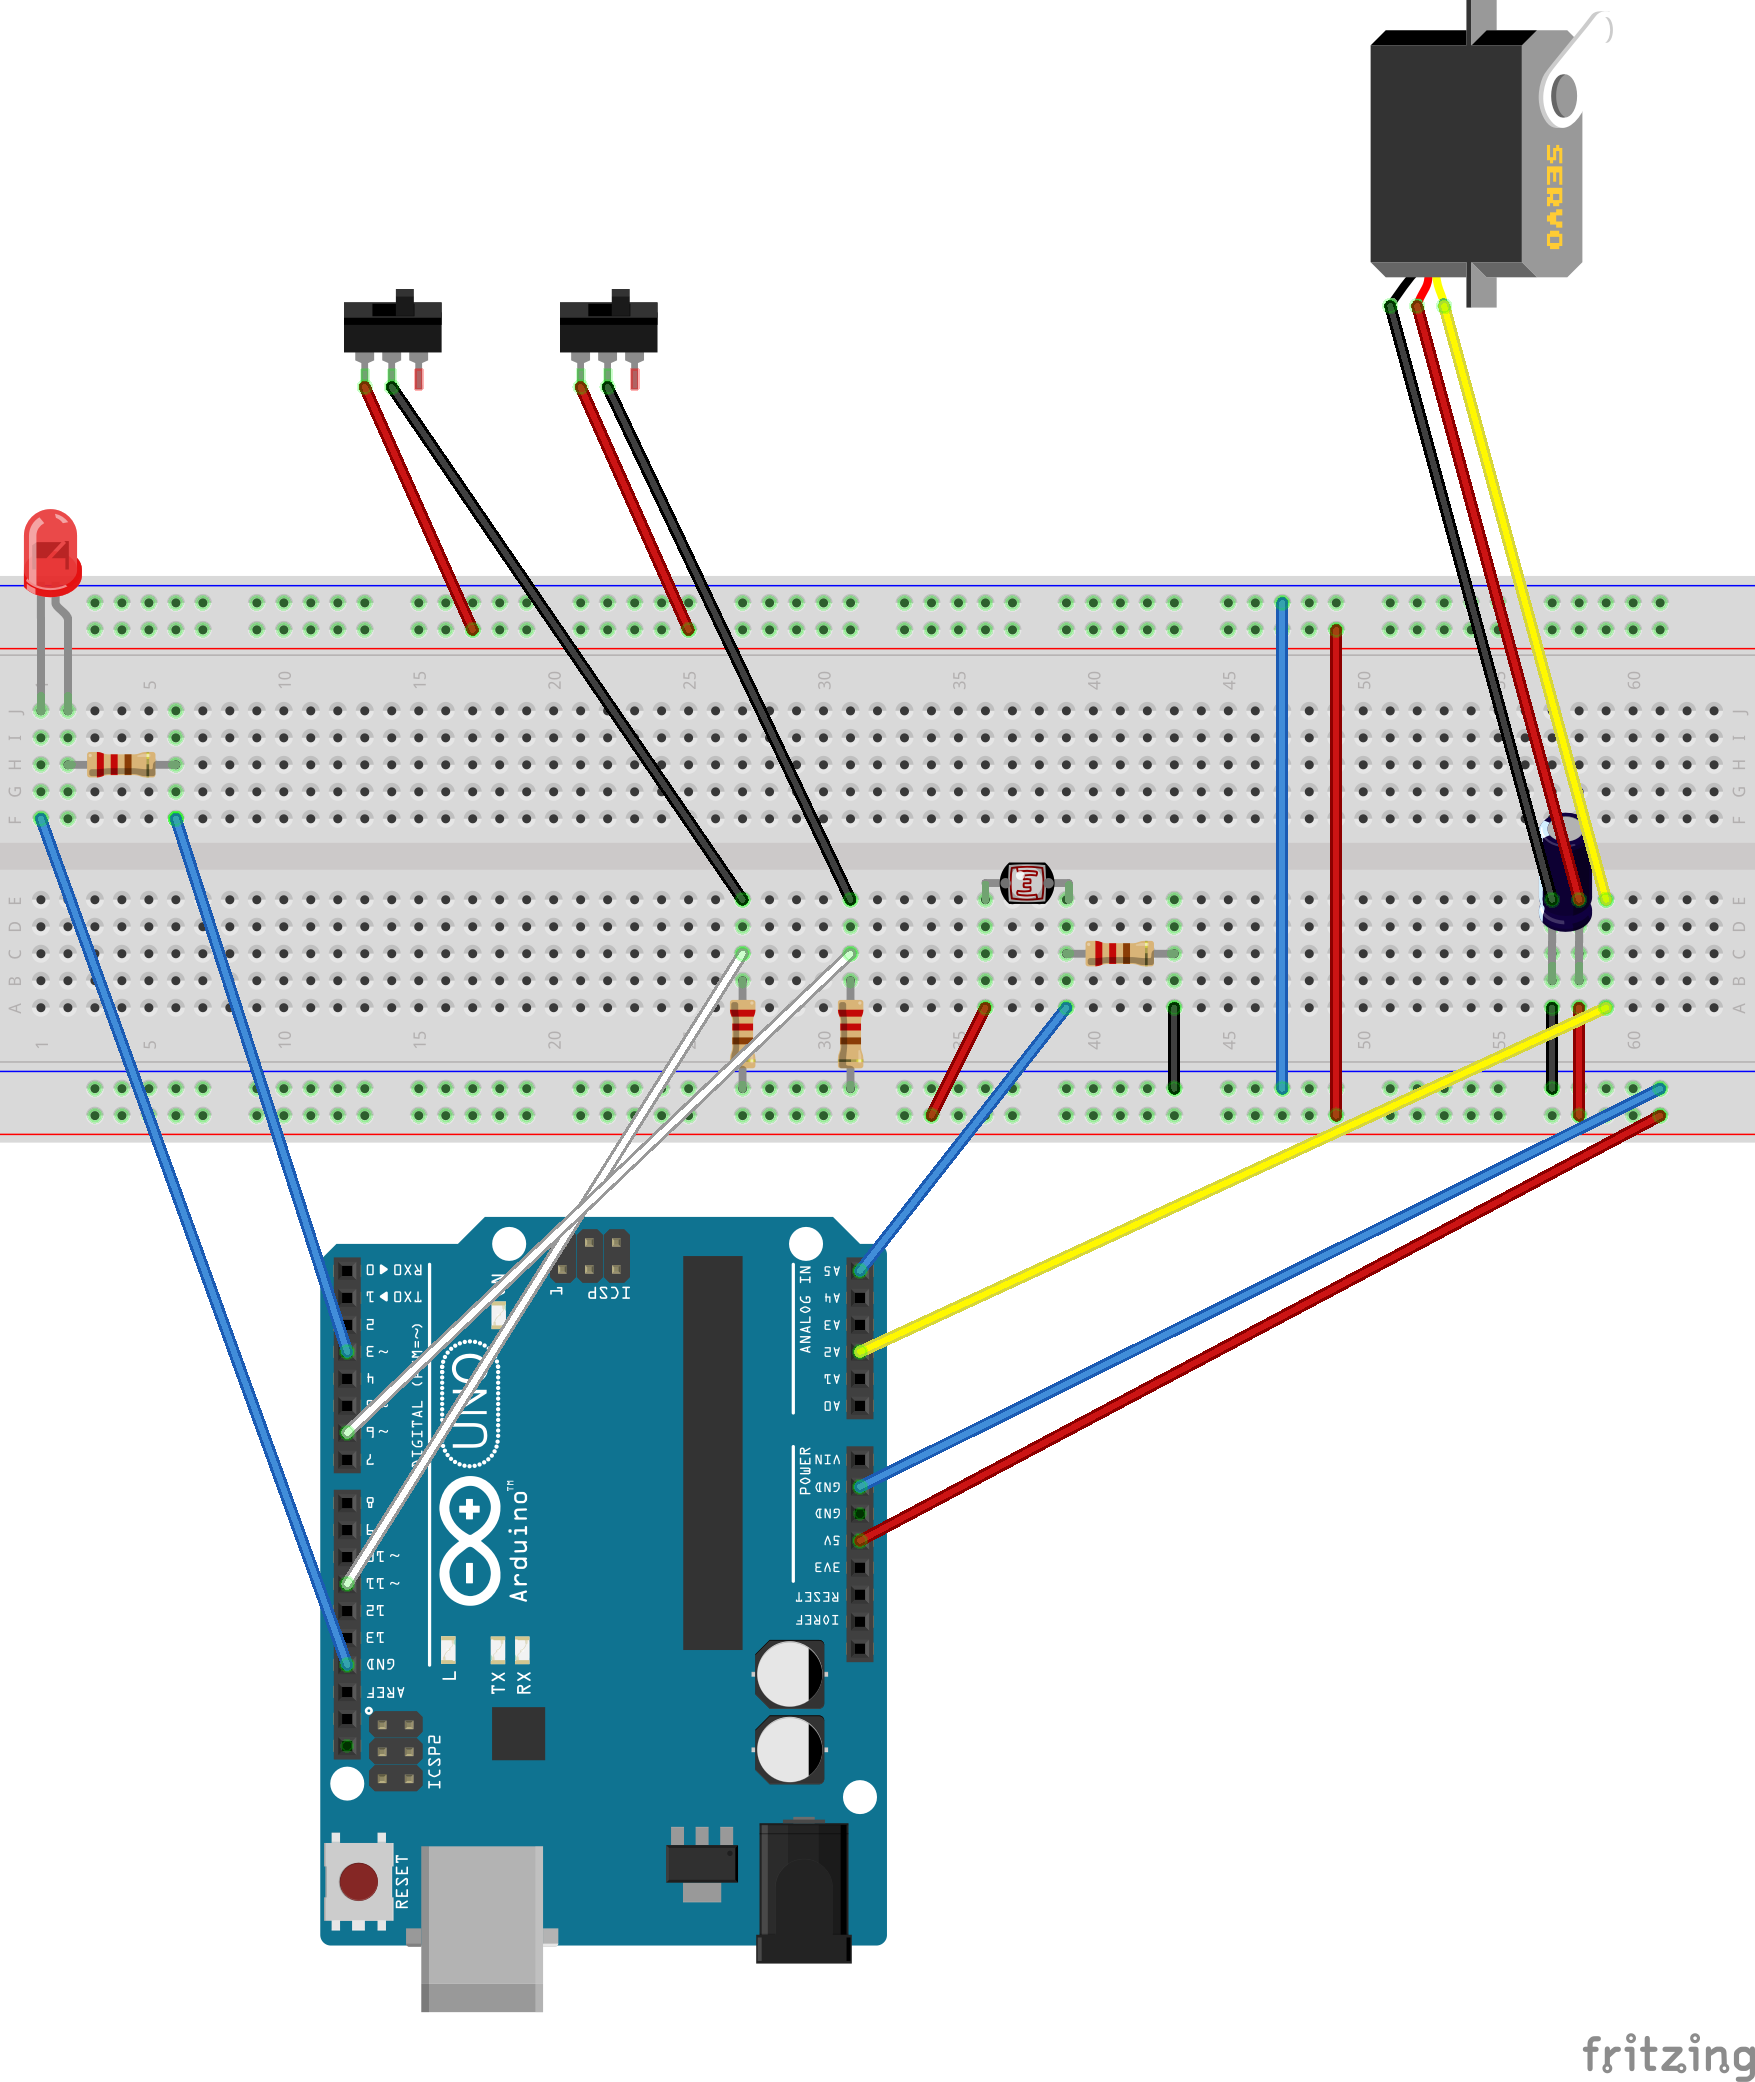 Its Urgent Arduino Not Working With External Power Supply Transformer Diagram Obstacle Avoidance Robot Circuit